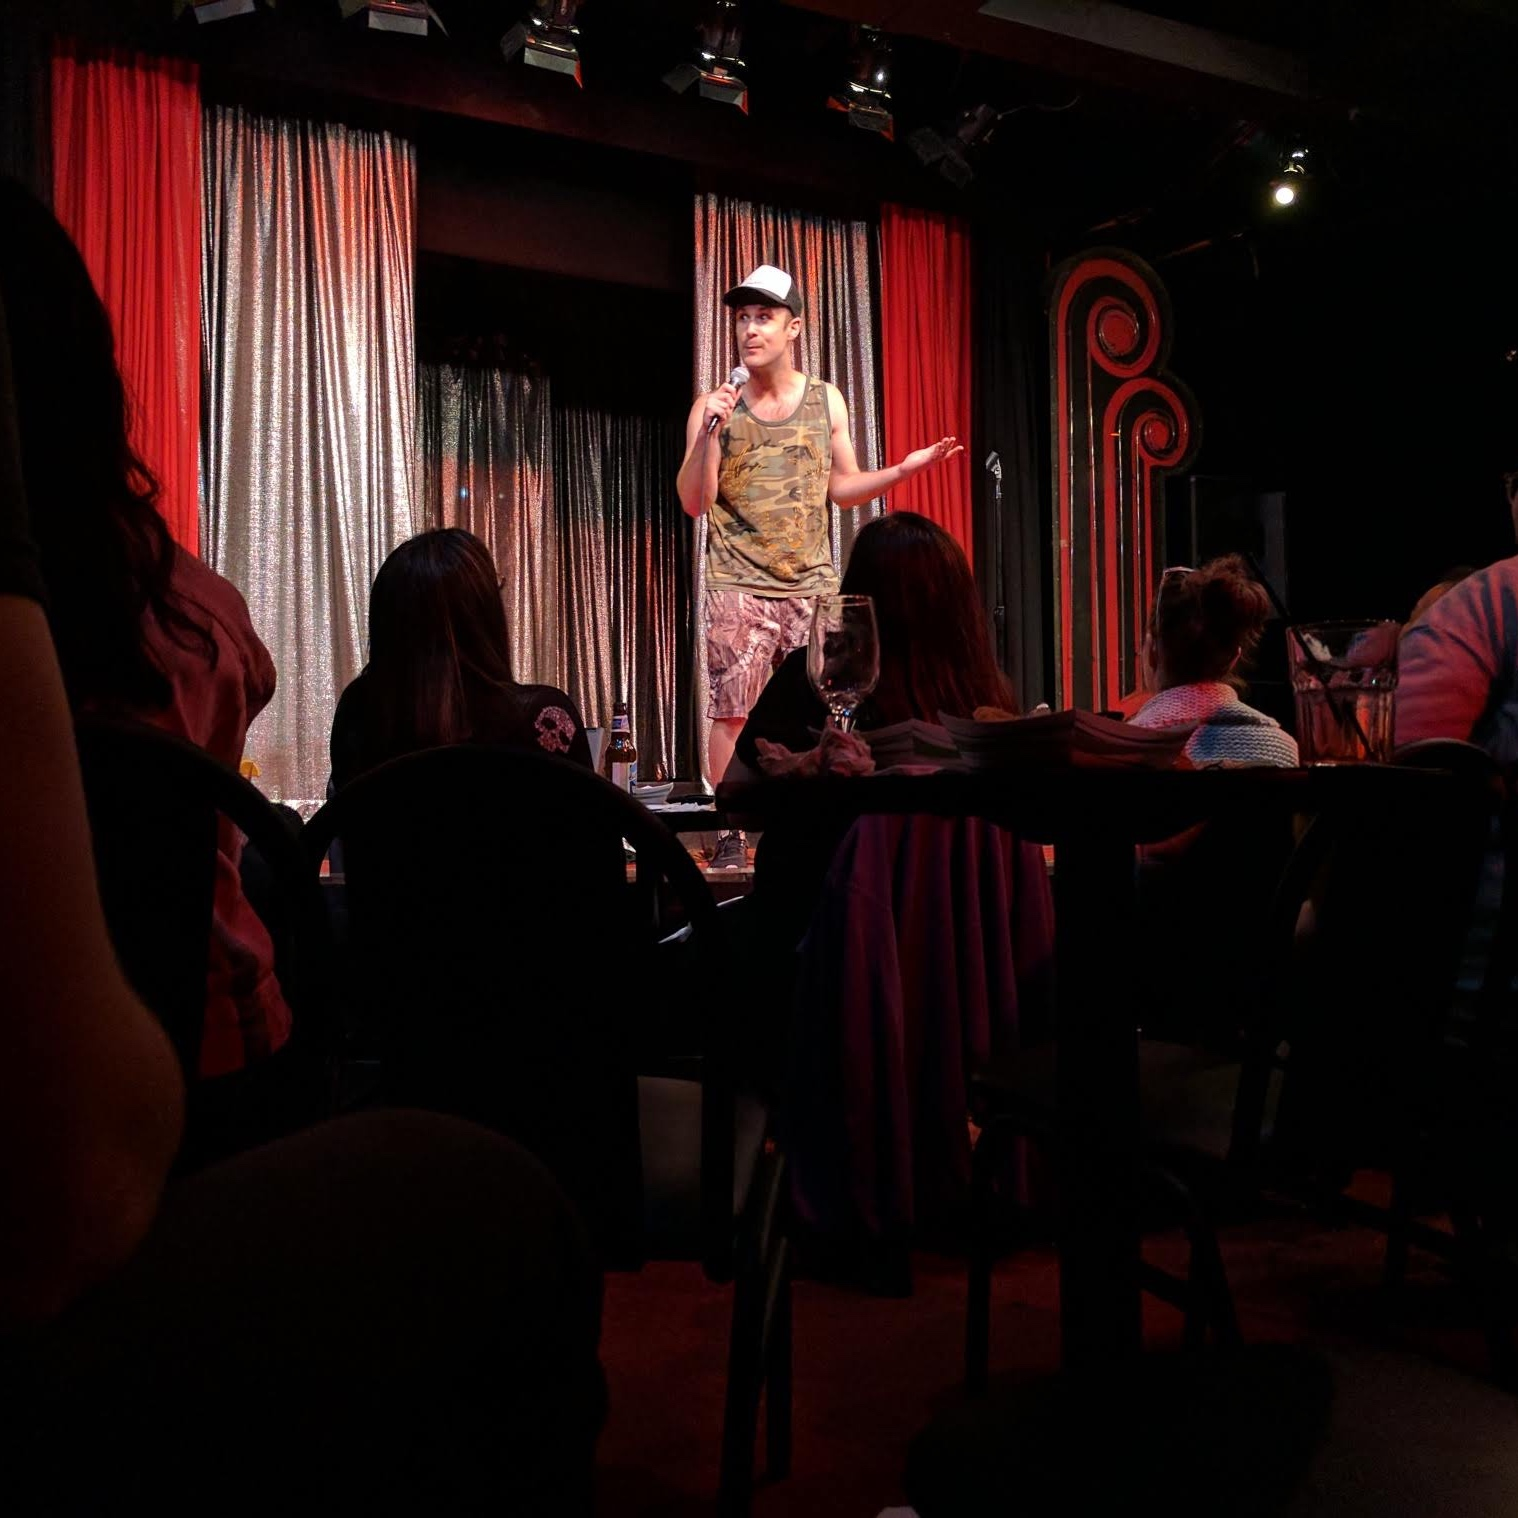 Stand Up - Barry Will Tell some Jokes & sing some songs at your event